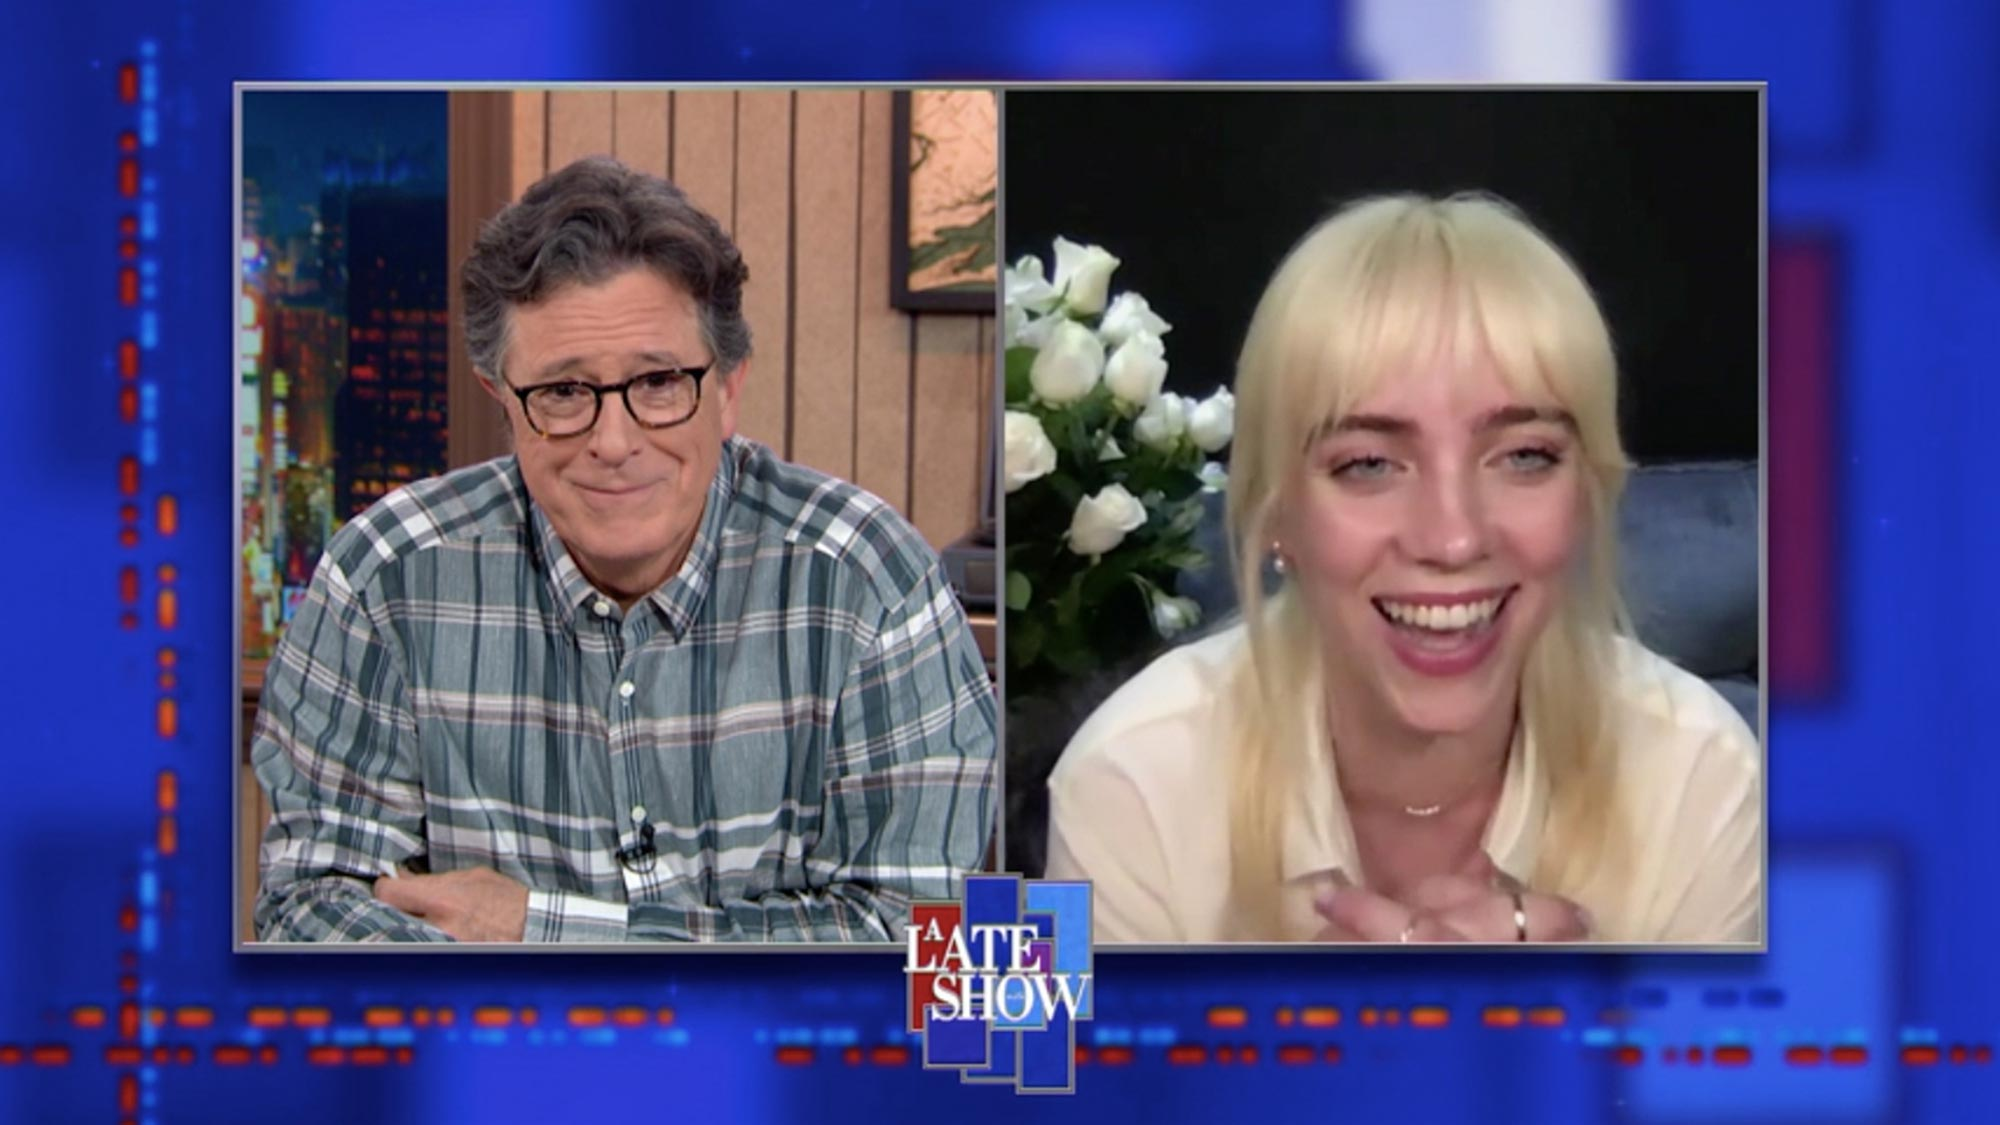 The Late Show with Stephen Colbert - Billie Eilish